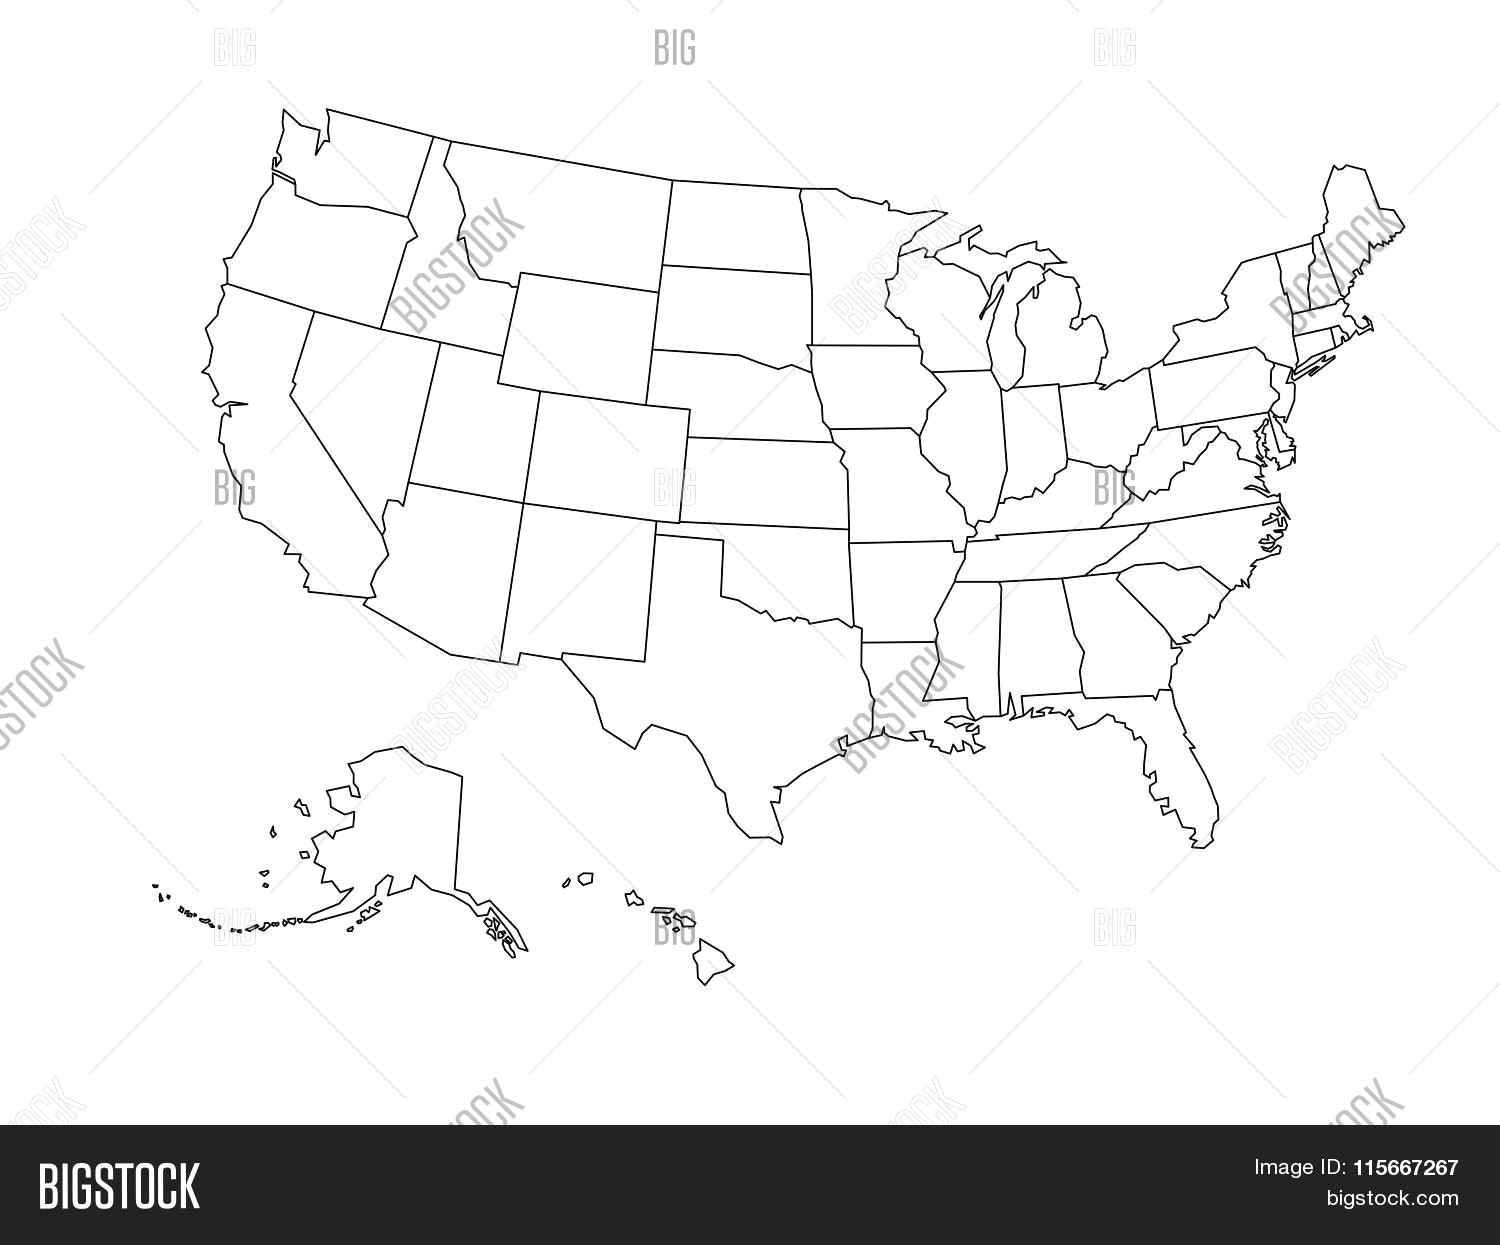 1500x1245 Blank Outline Map Usa Vector Photo Bigstock Showy Of Usa Black And